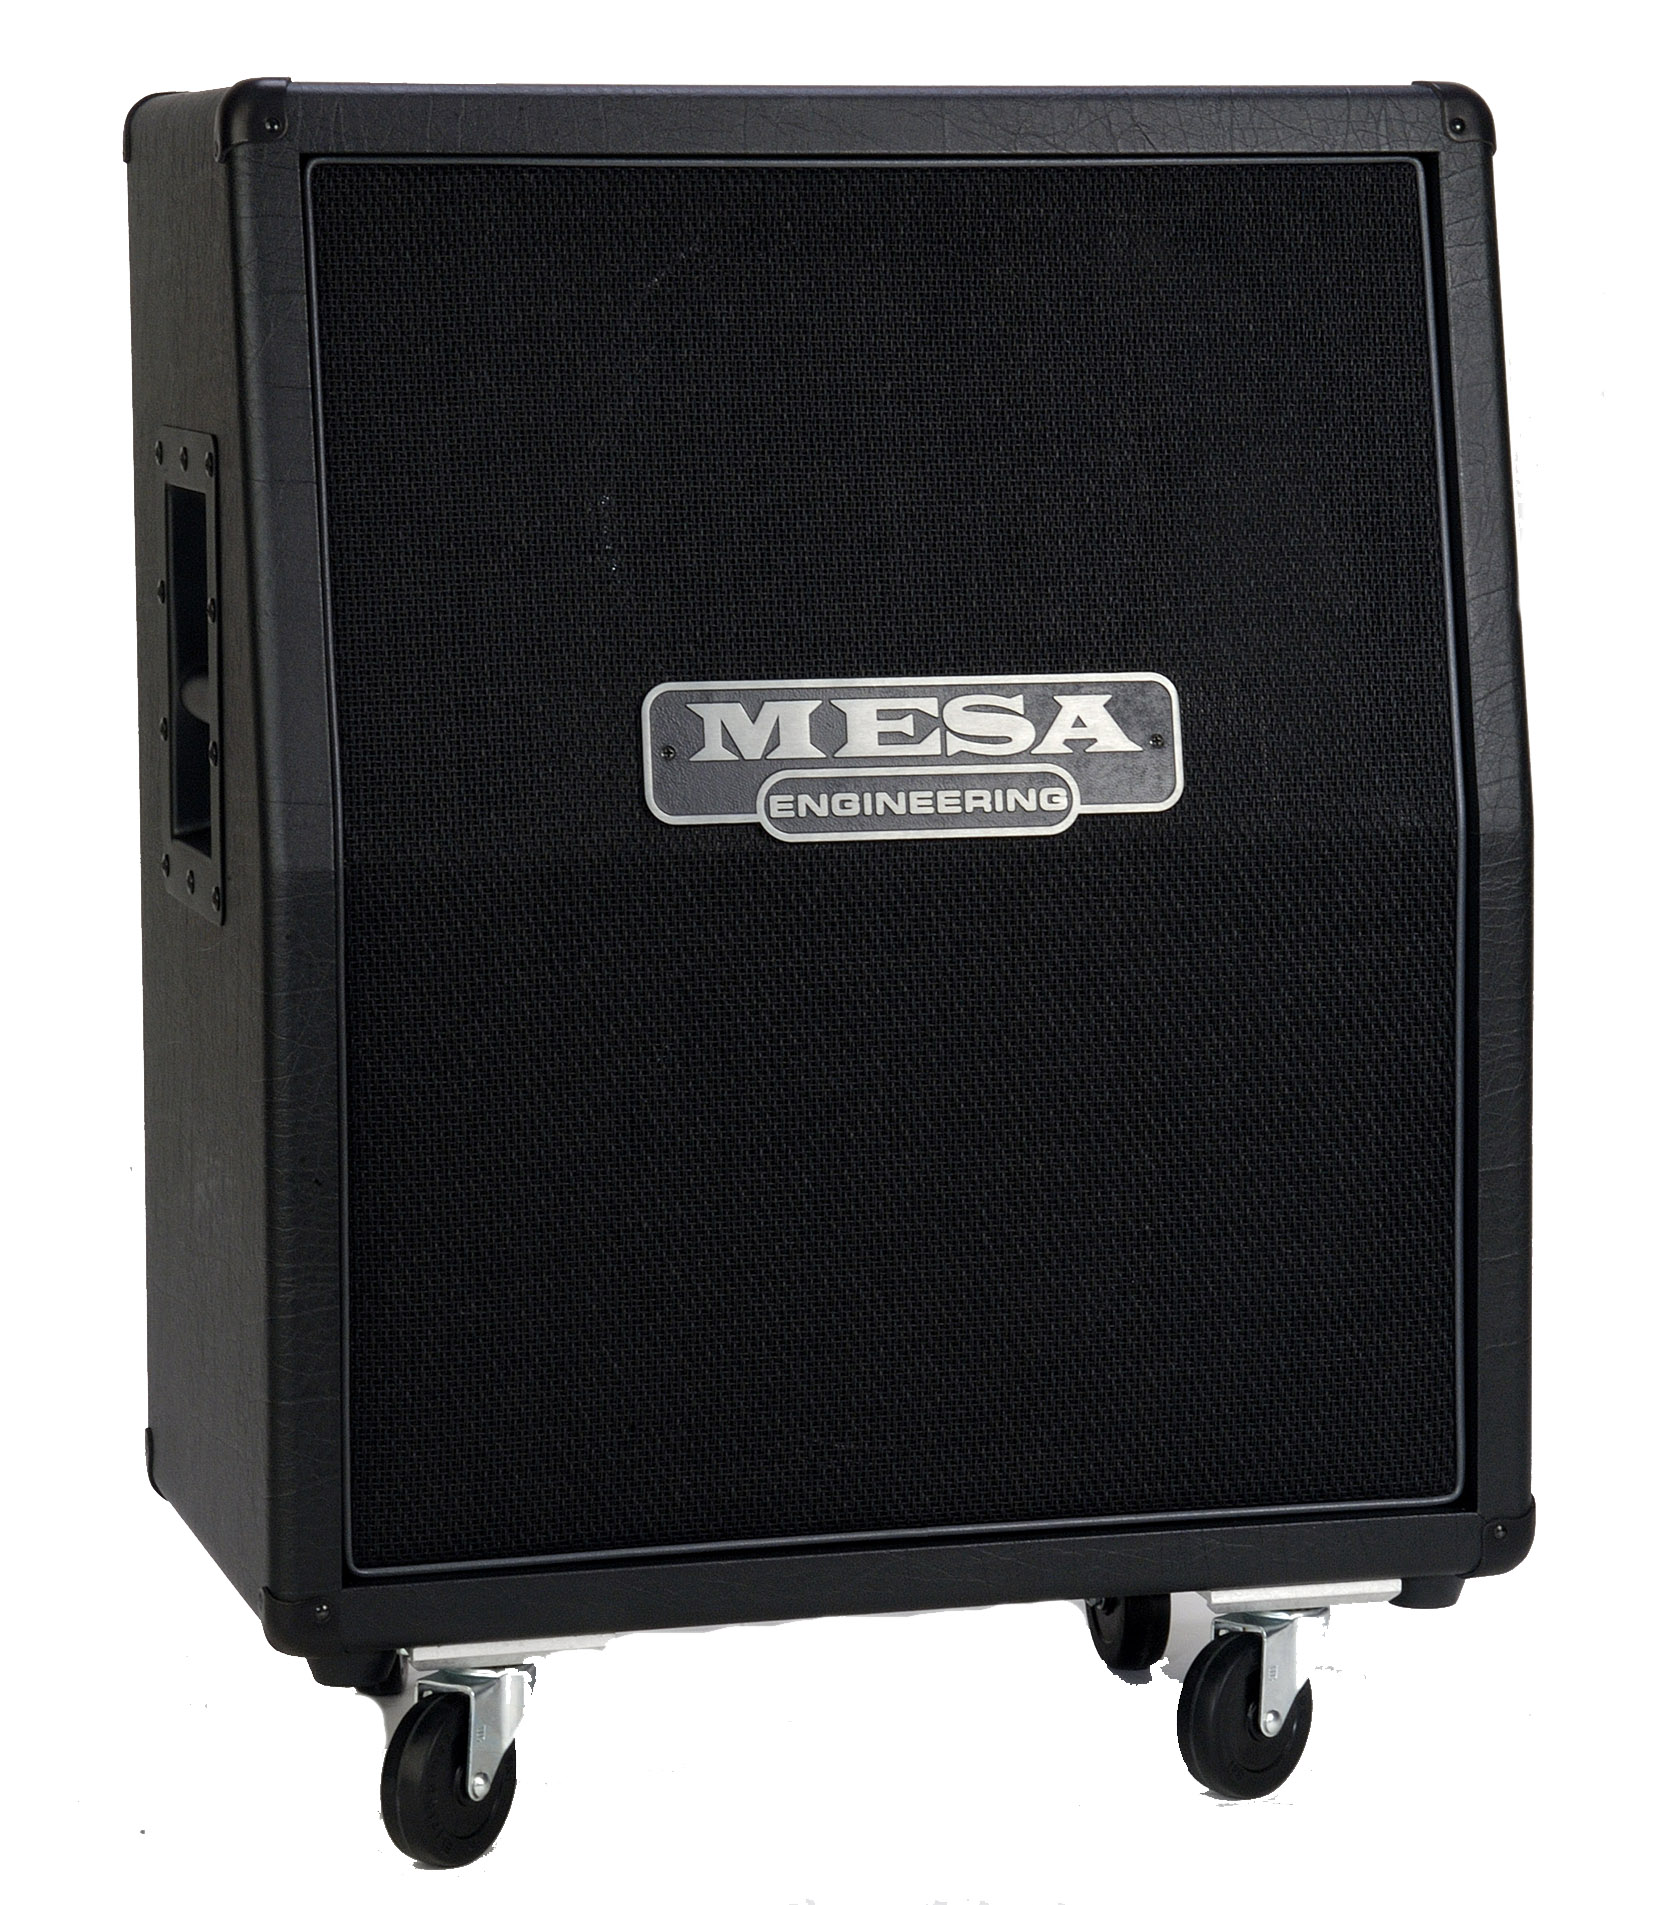 Melody House Musical Instruments Store - 2x12 Recto Vertical Slant Cabinet